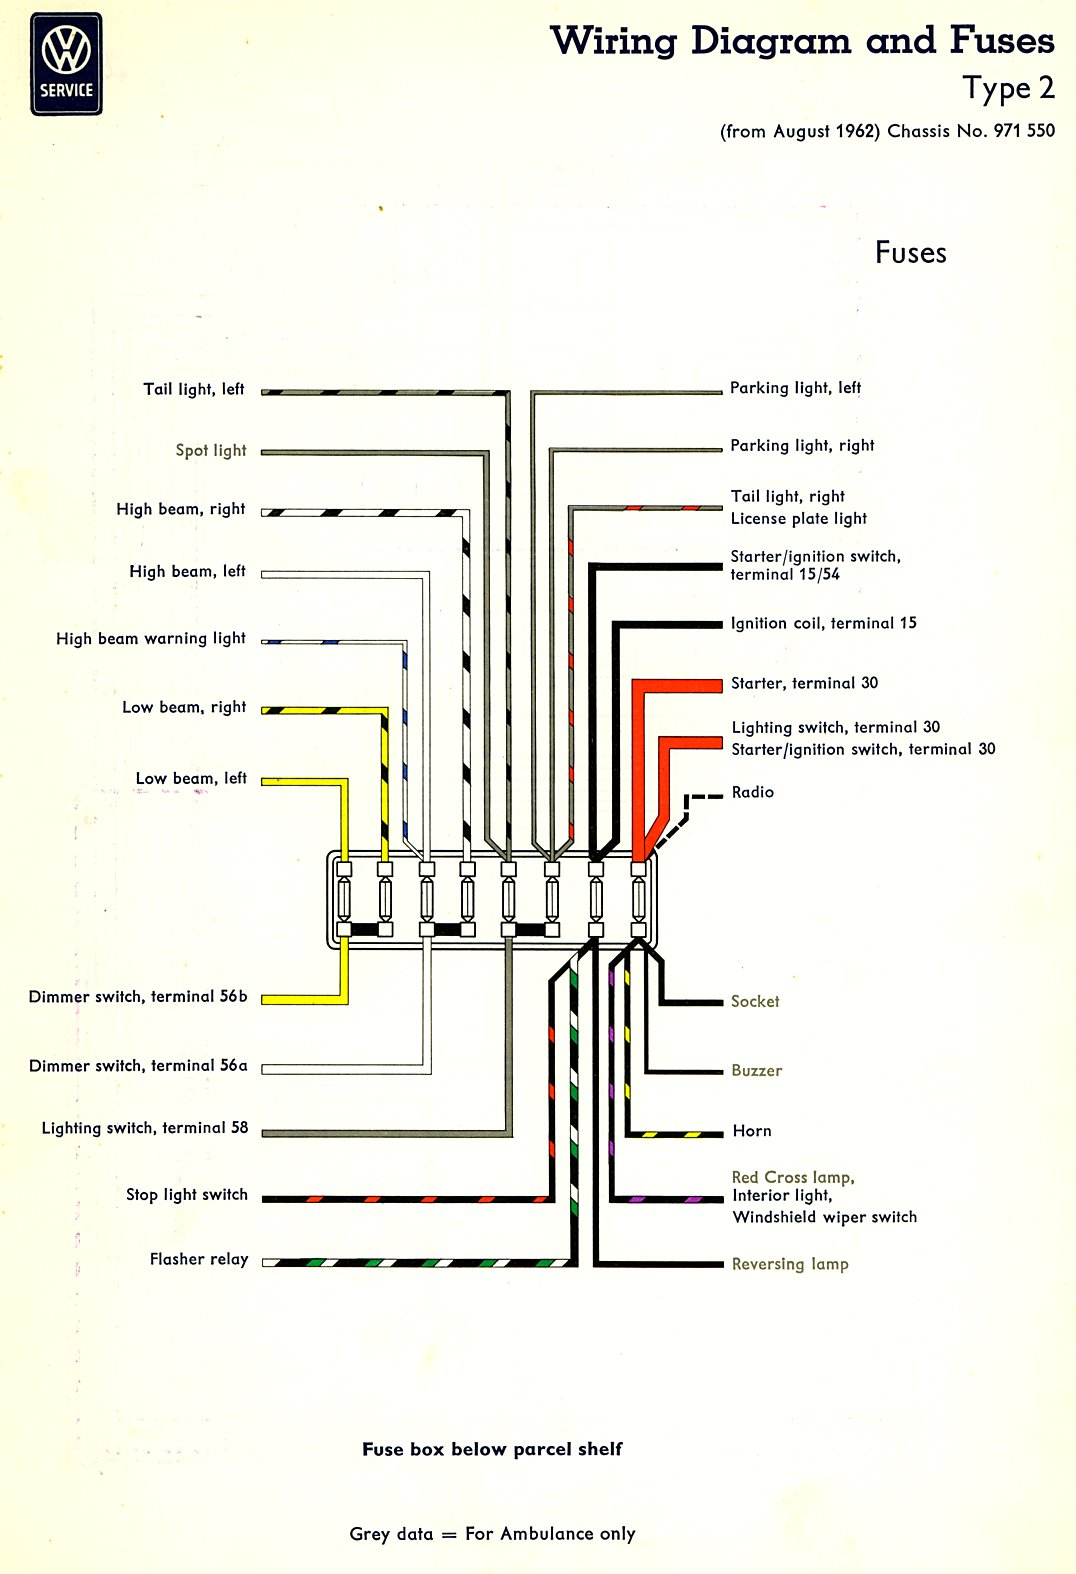 bus_63_fuses thesamba com type 2 wiring diagrams 1978 vw bus fuse box diagram at fashall.co